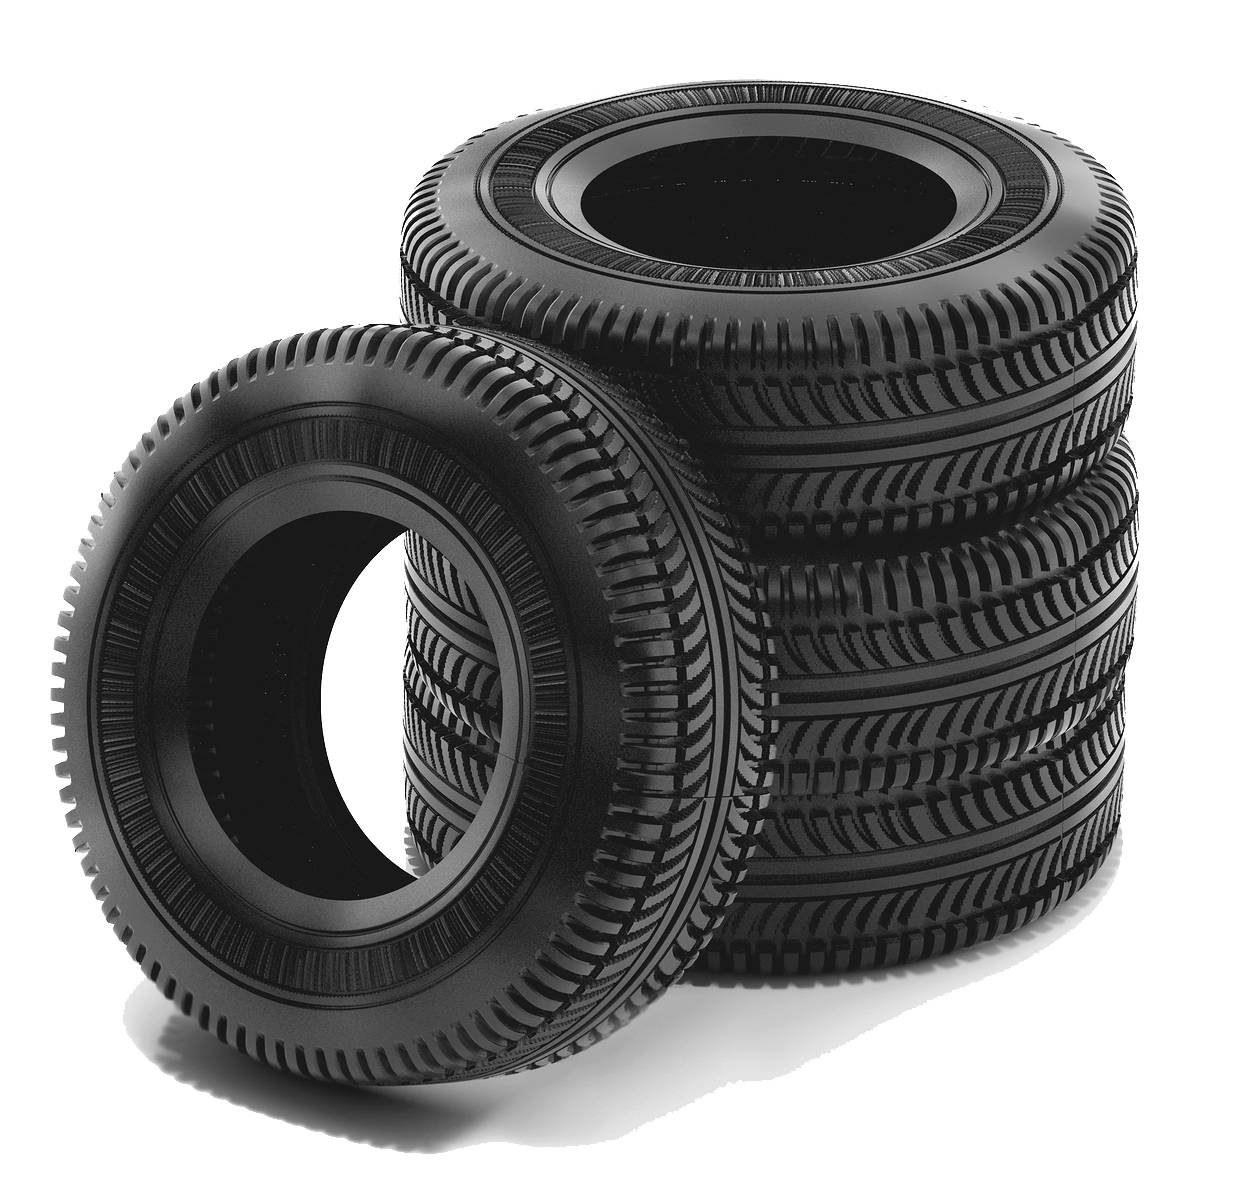 Tires PNG Image.